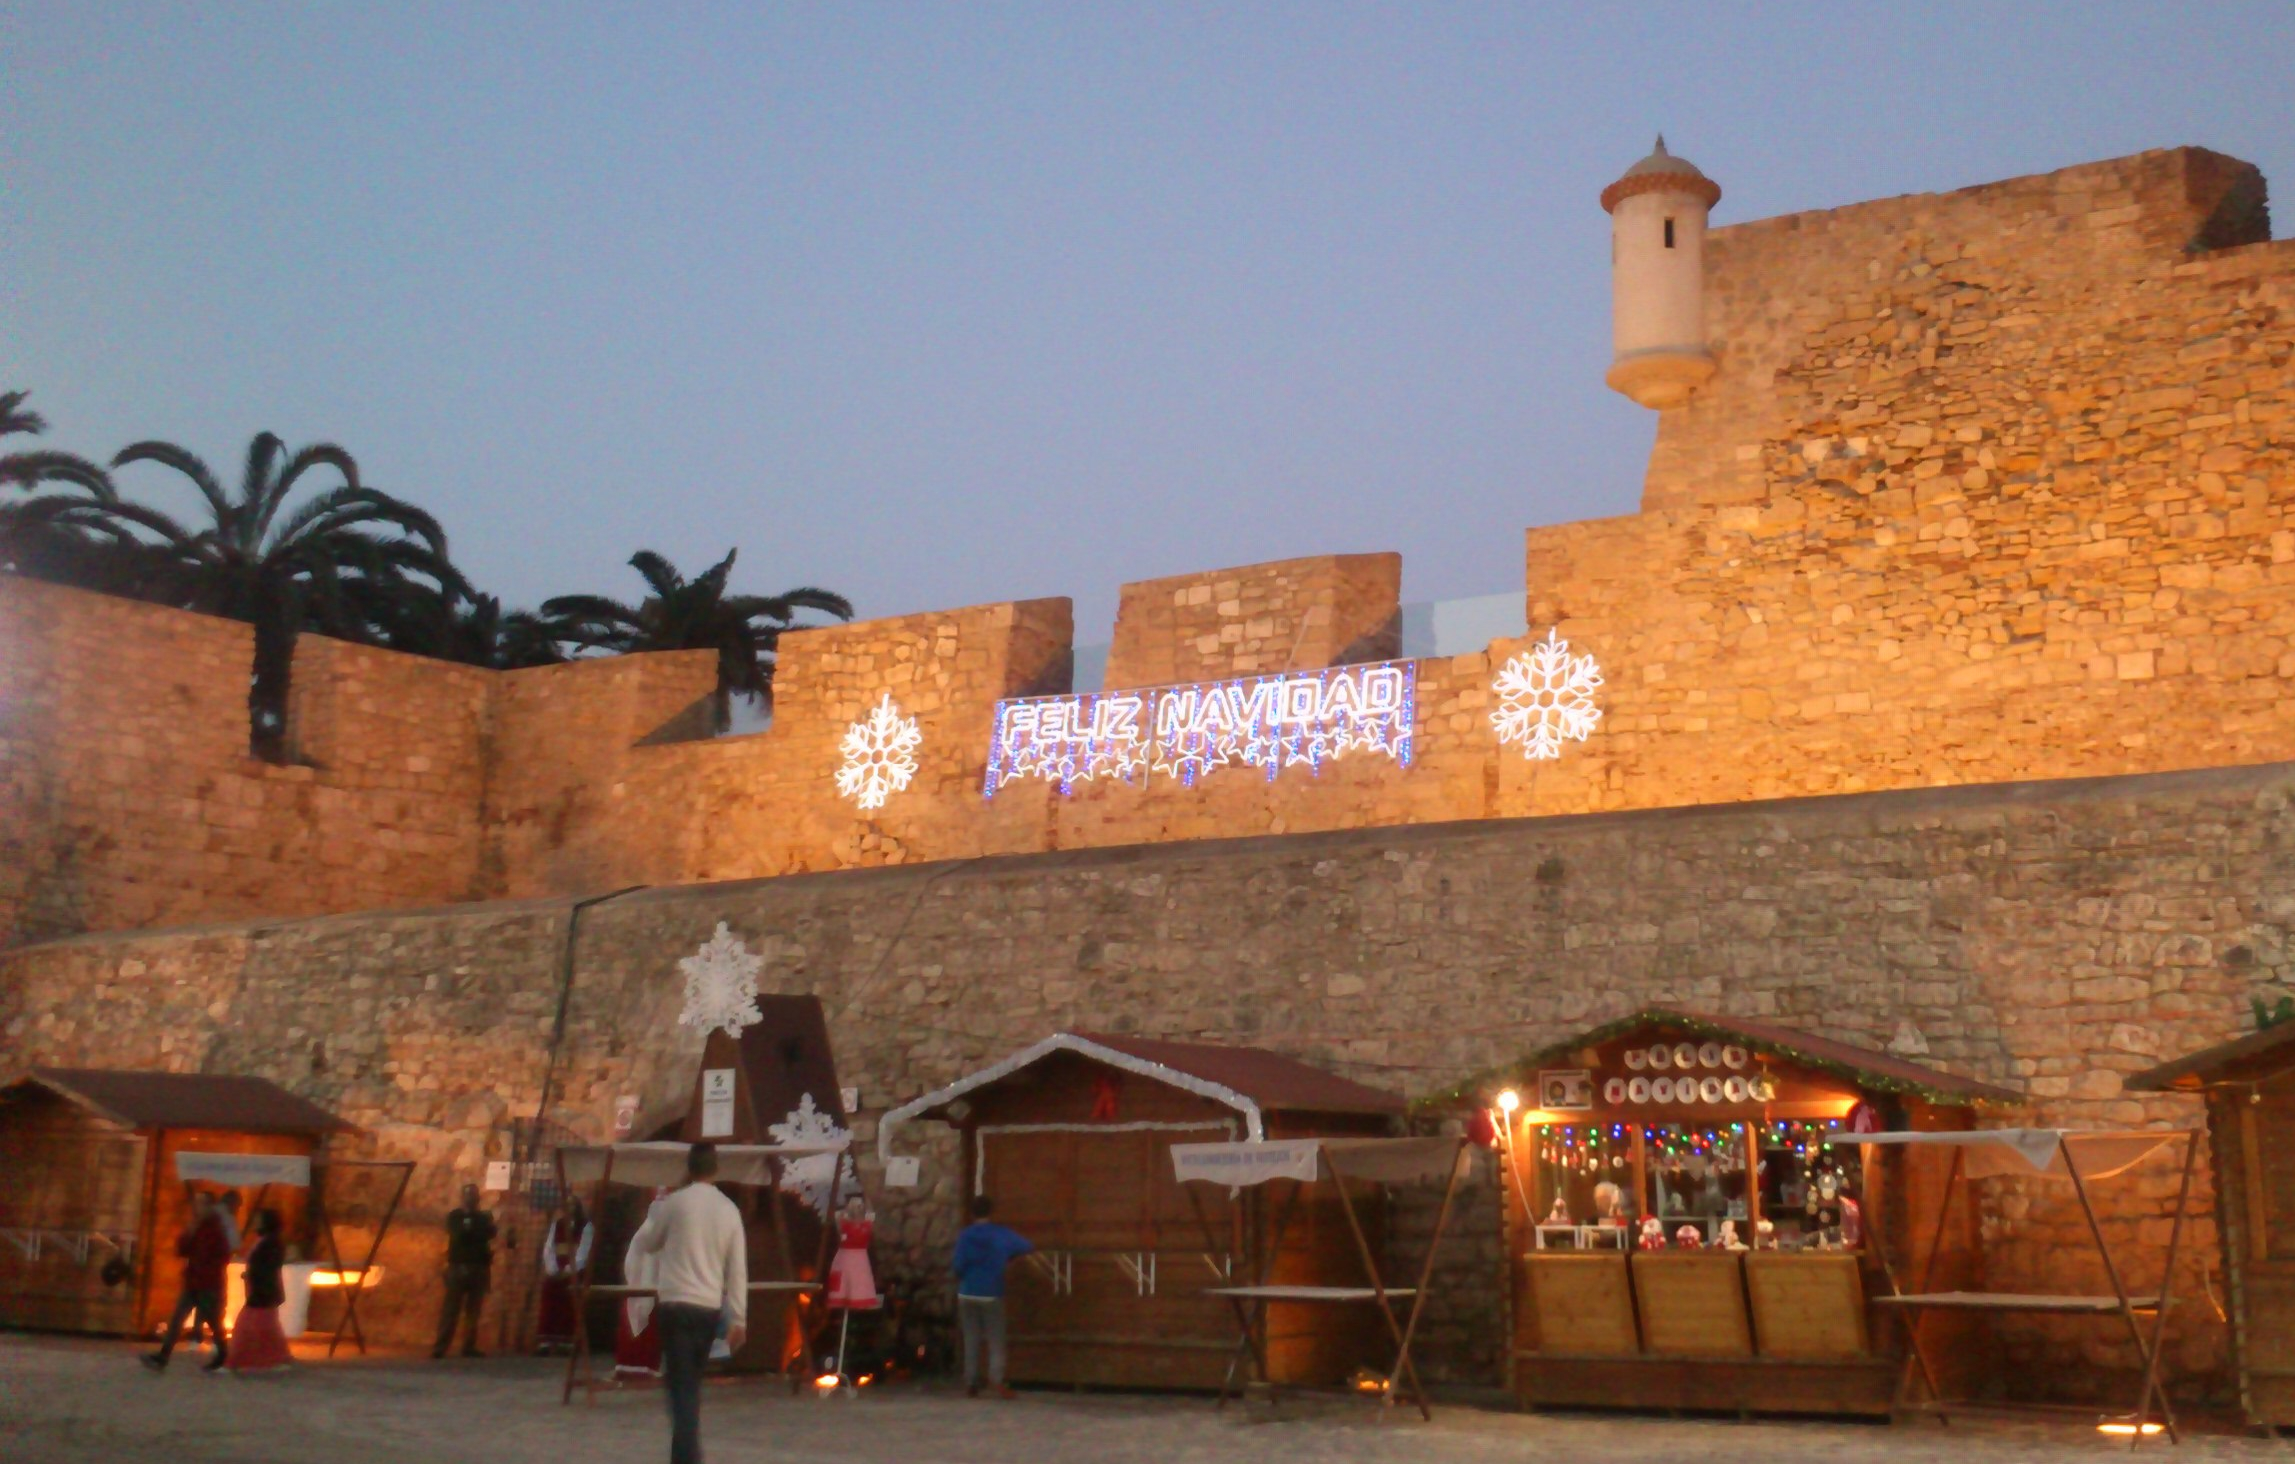 X-mas market in the Spanish enclave of Melilla, 13.12.16. Photo: Cohen, Licence: CC by-nc-sa Creative Commons Licence: Attribution + Noncommercial + ShareAlike